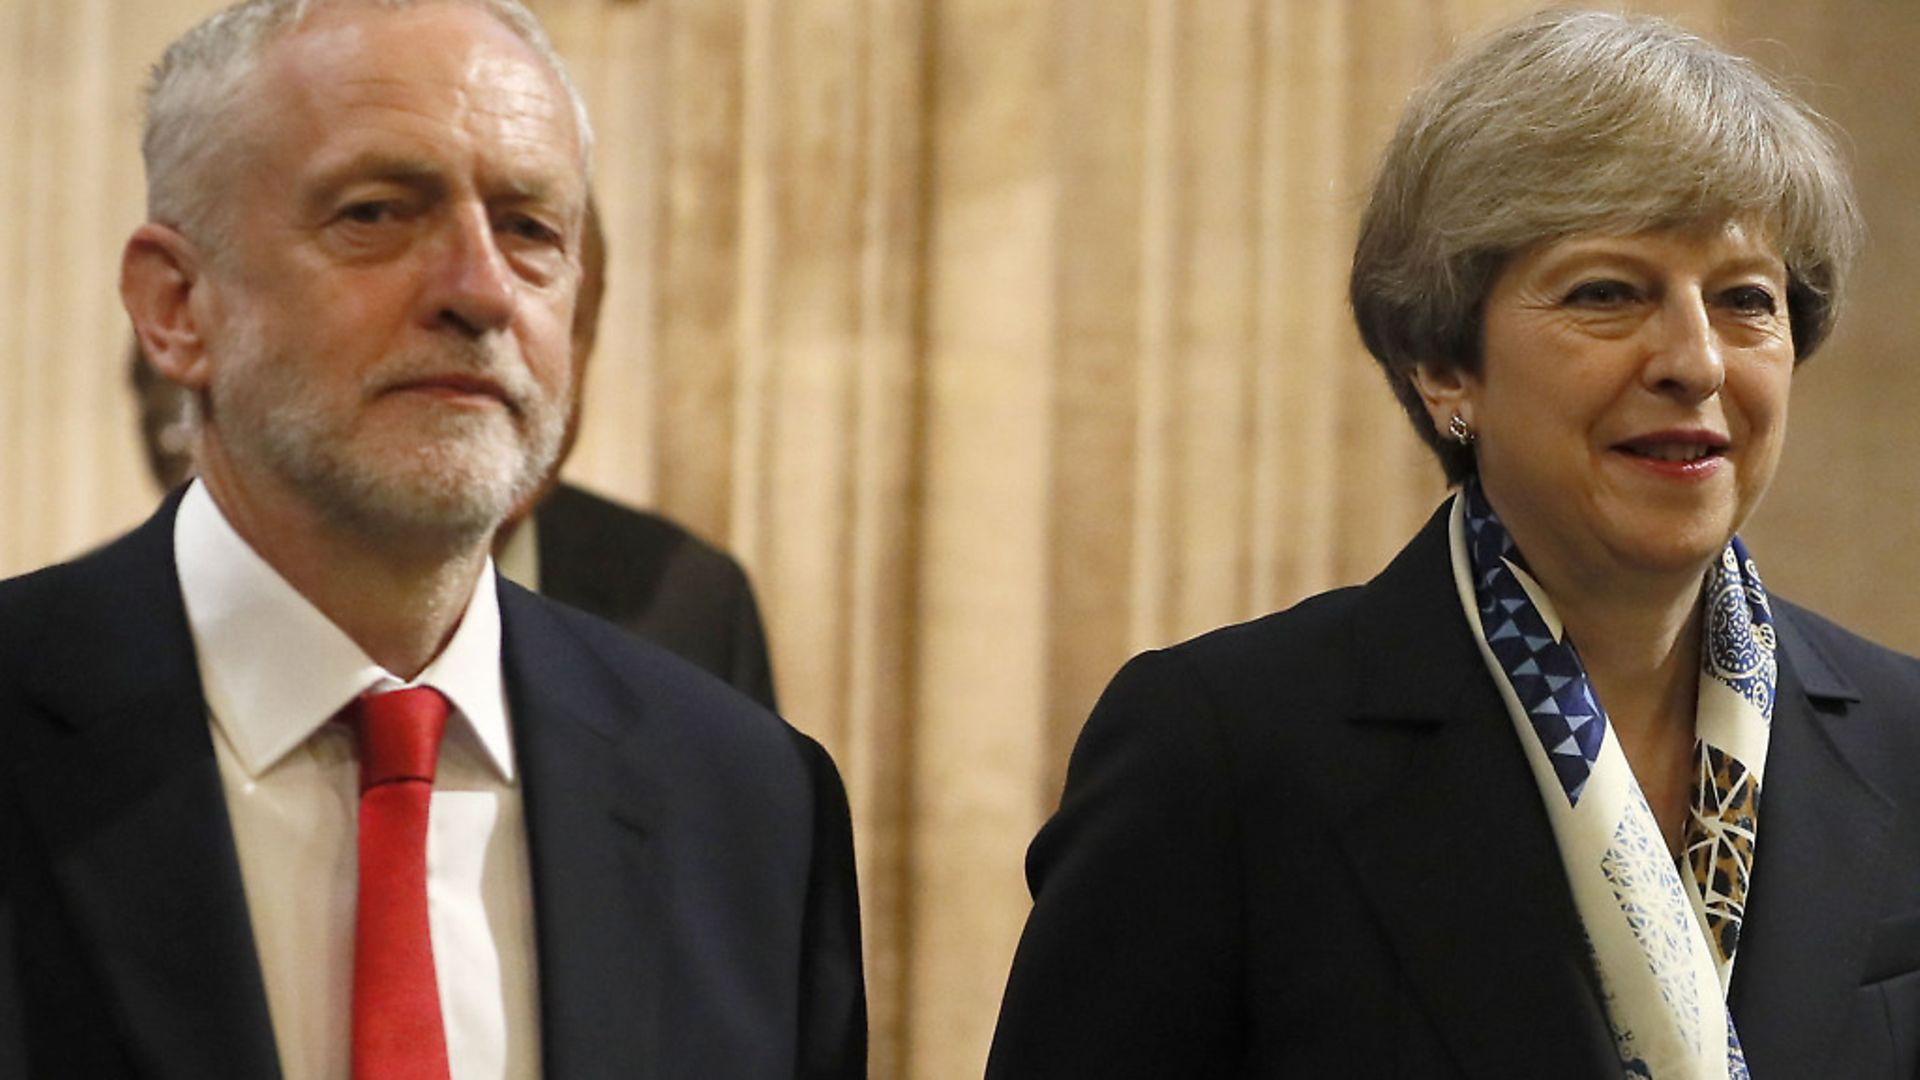 Theresa May and Jeremy Corbyn pictured last year at the state opening of Parliament. Picture: Kirsty Wigglesworth - Credit: PA Archive/PA Images